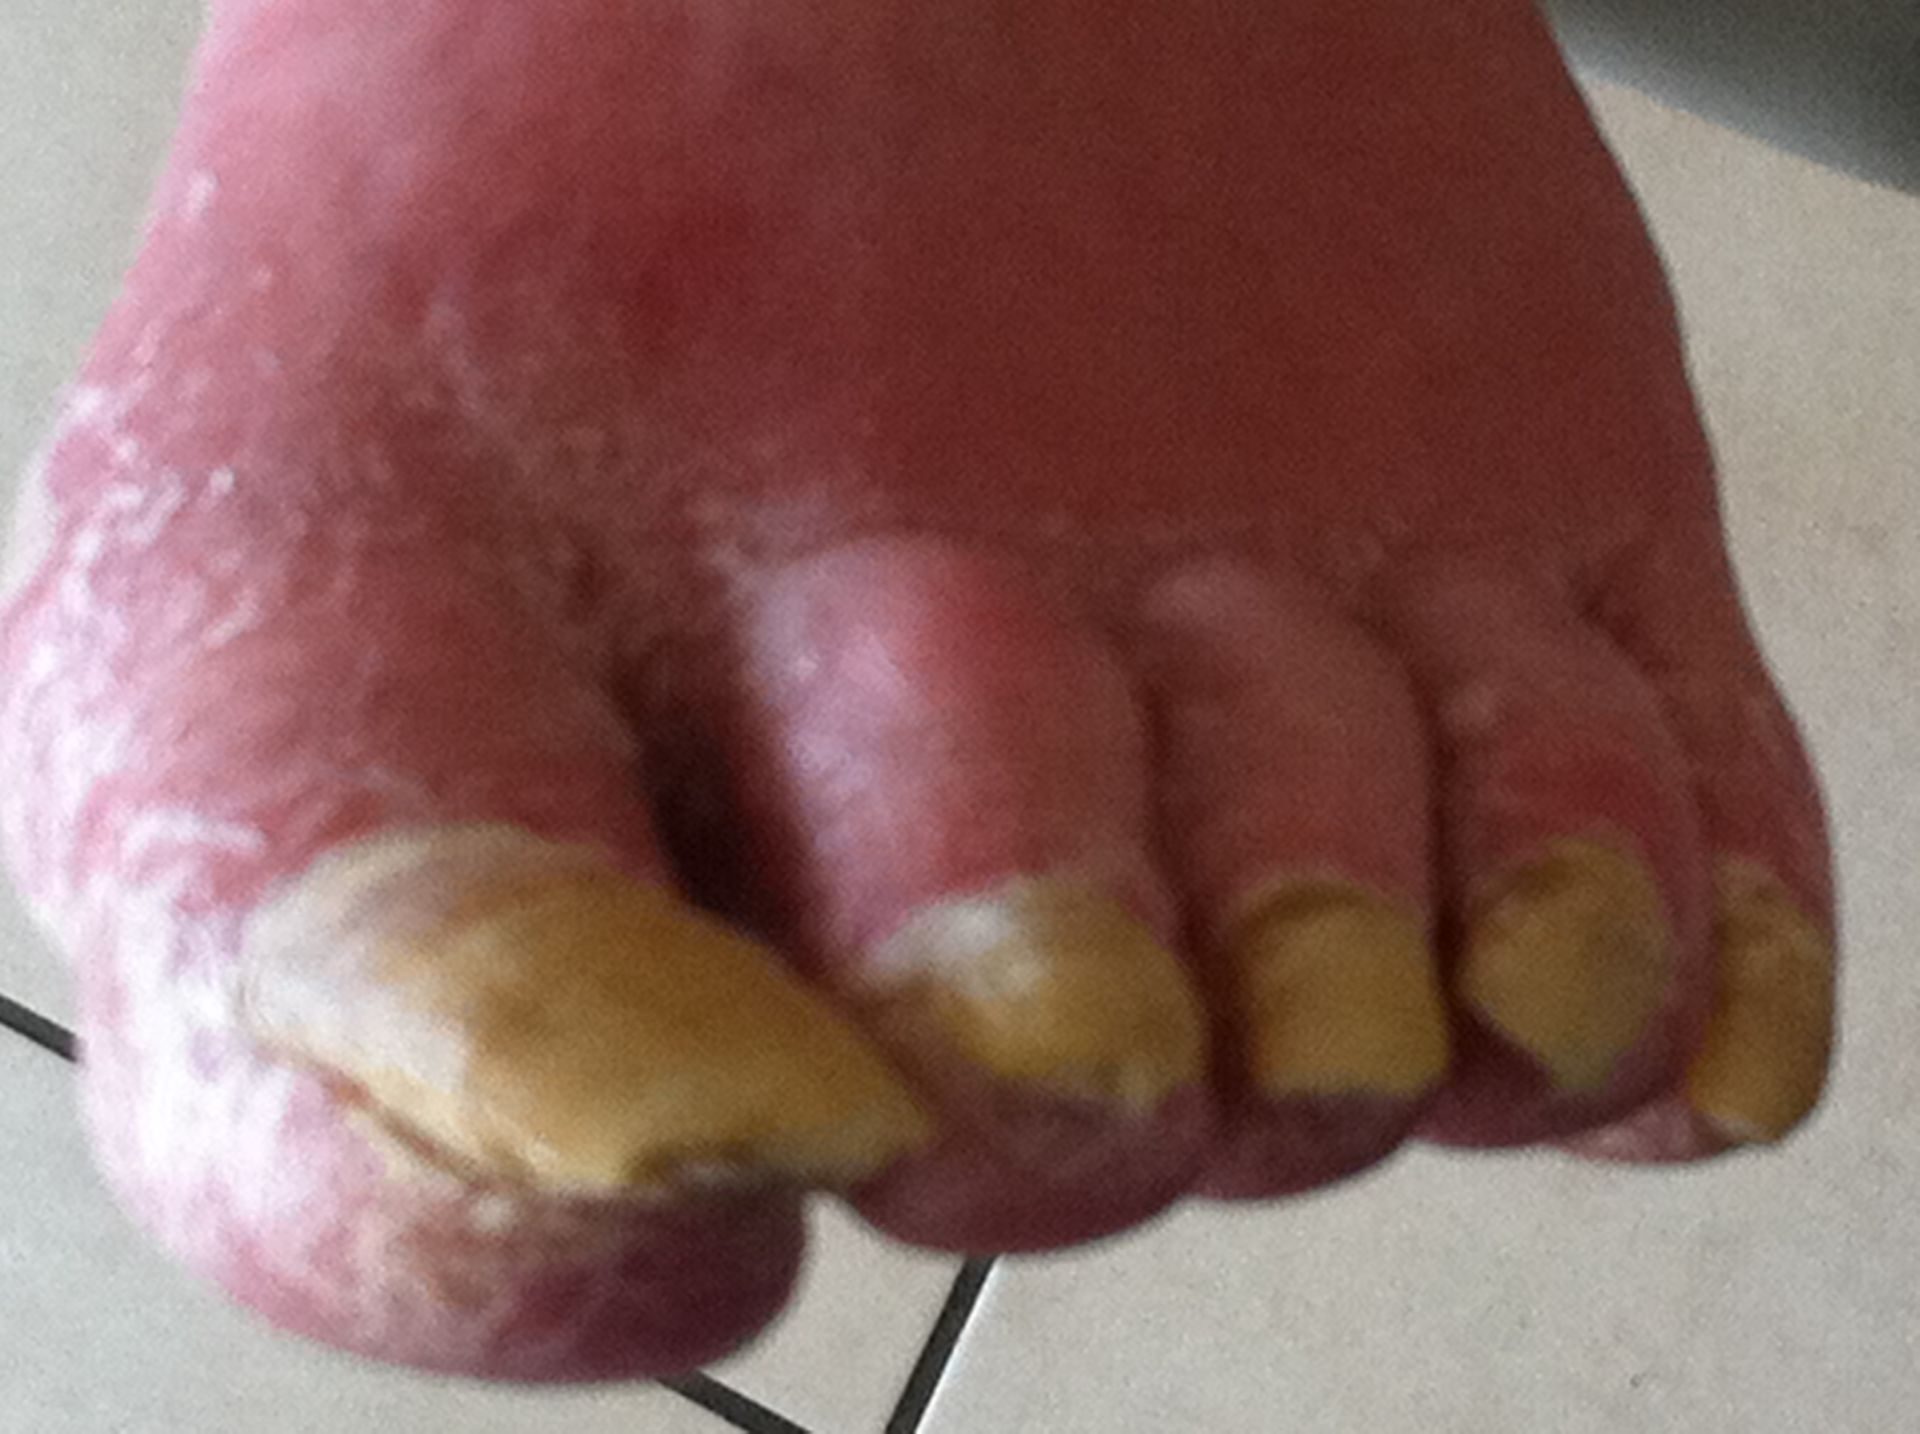 Long time no podiatry care.